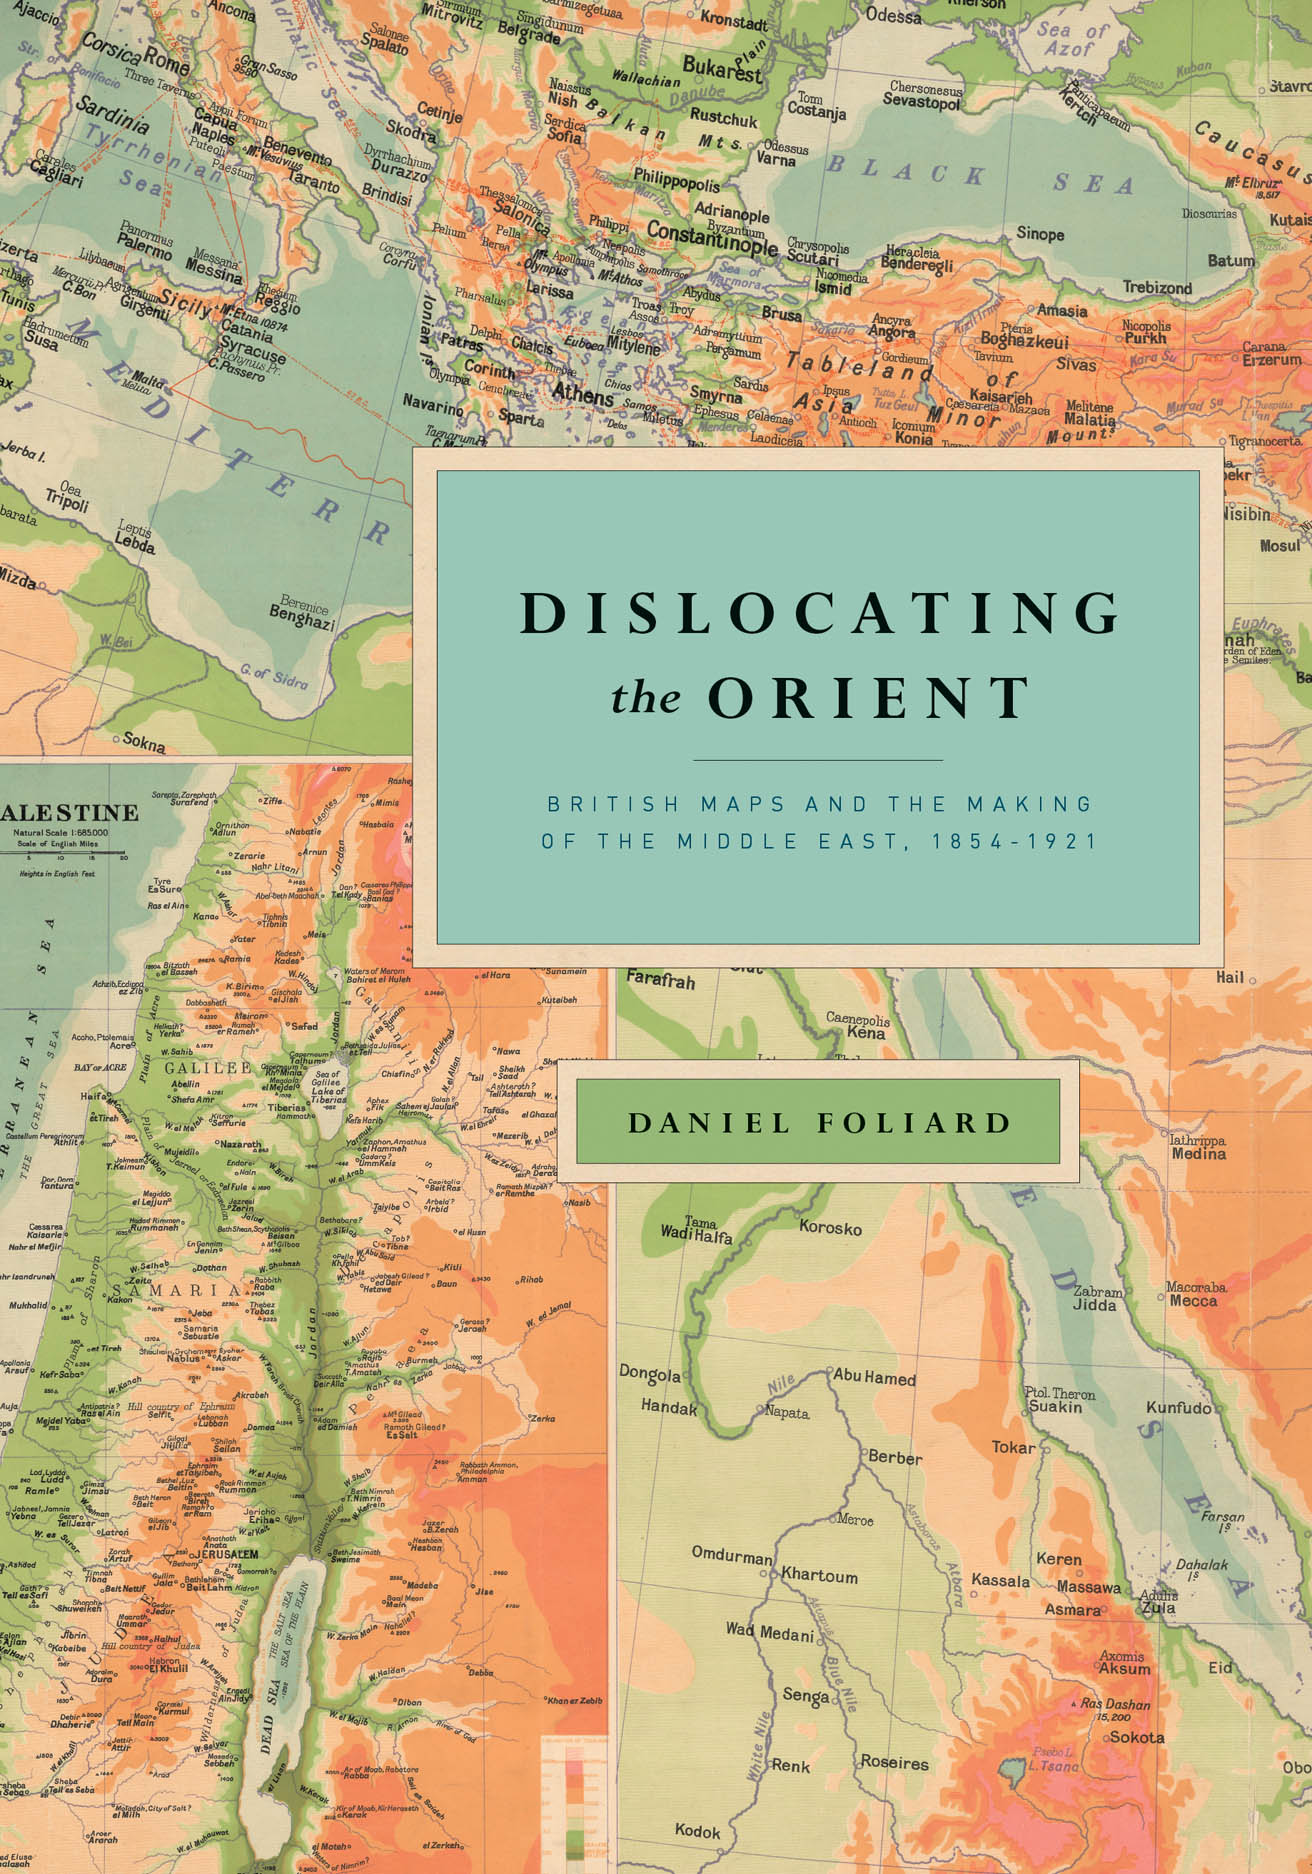 Dislocating the Orient: British Maps and the Making of the Middle East, 1854-1921